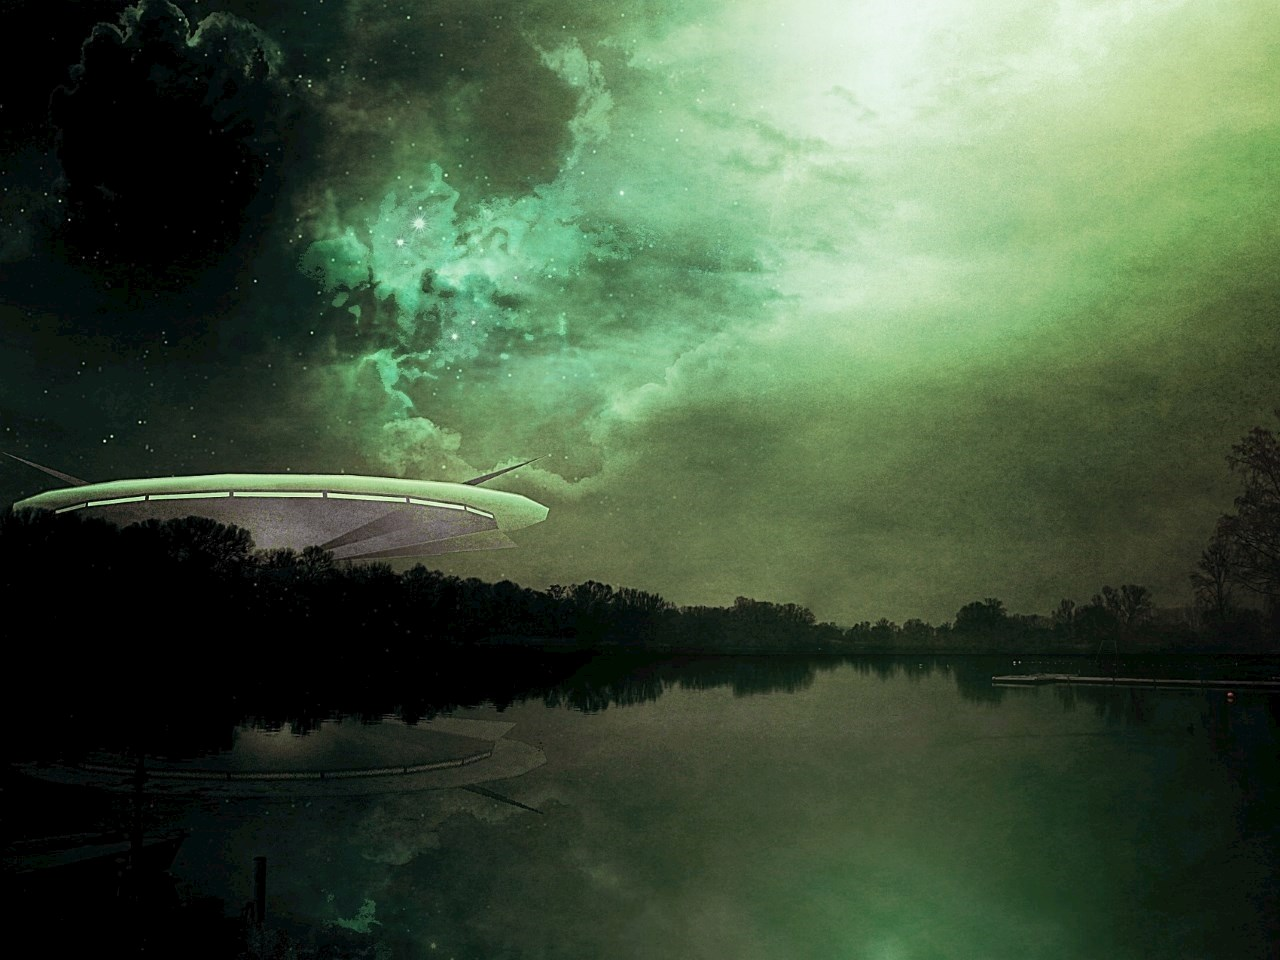 Illustration of an Unidentified Flying Object